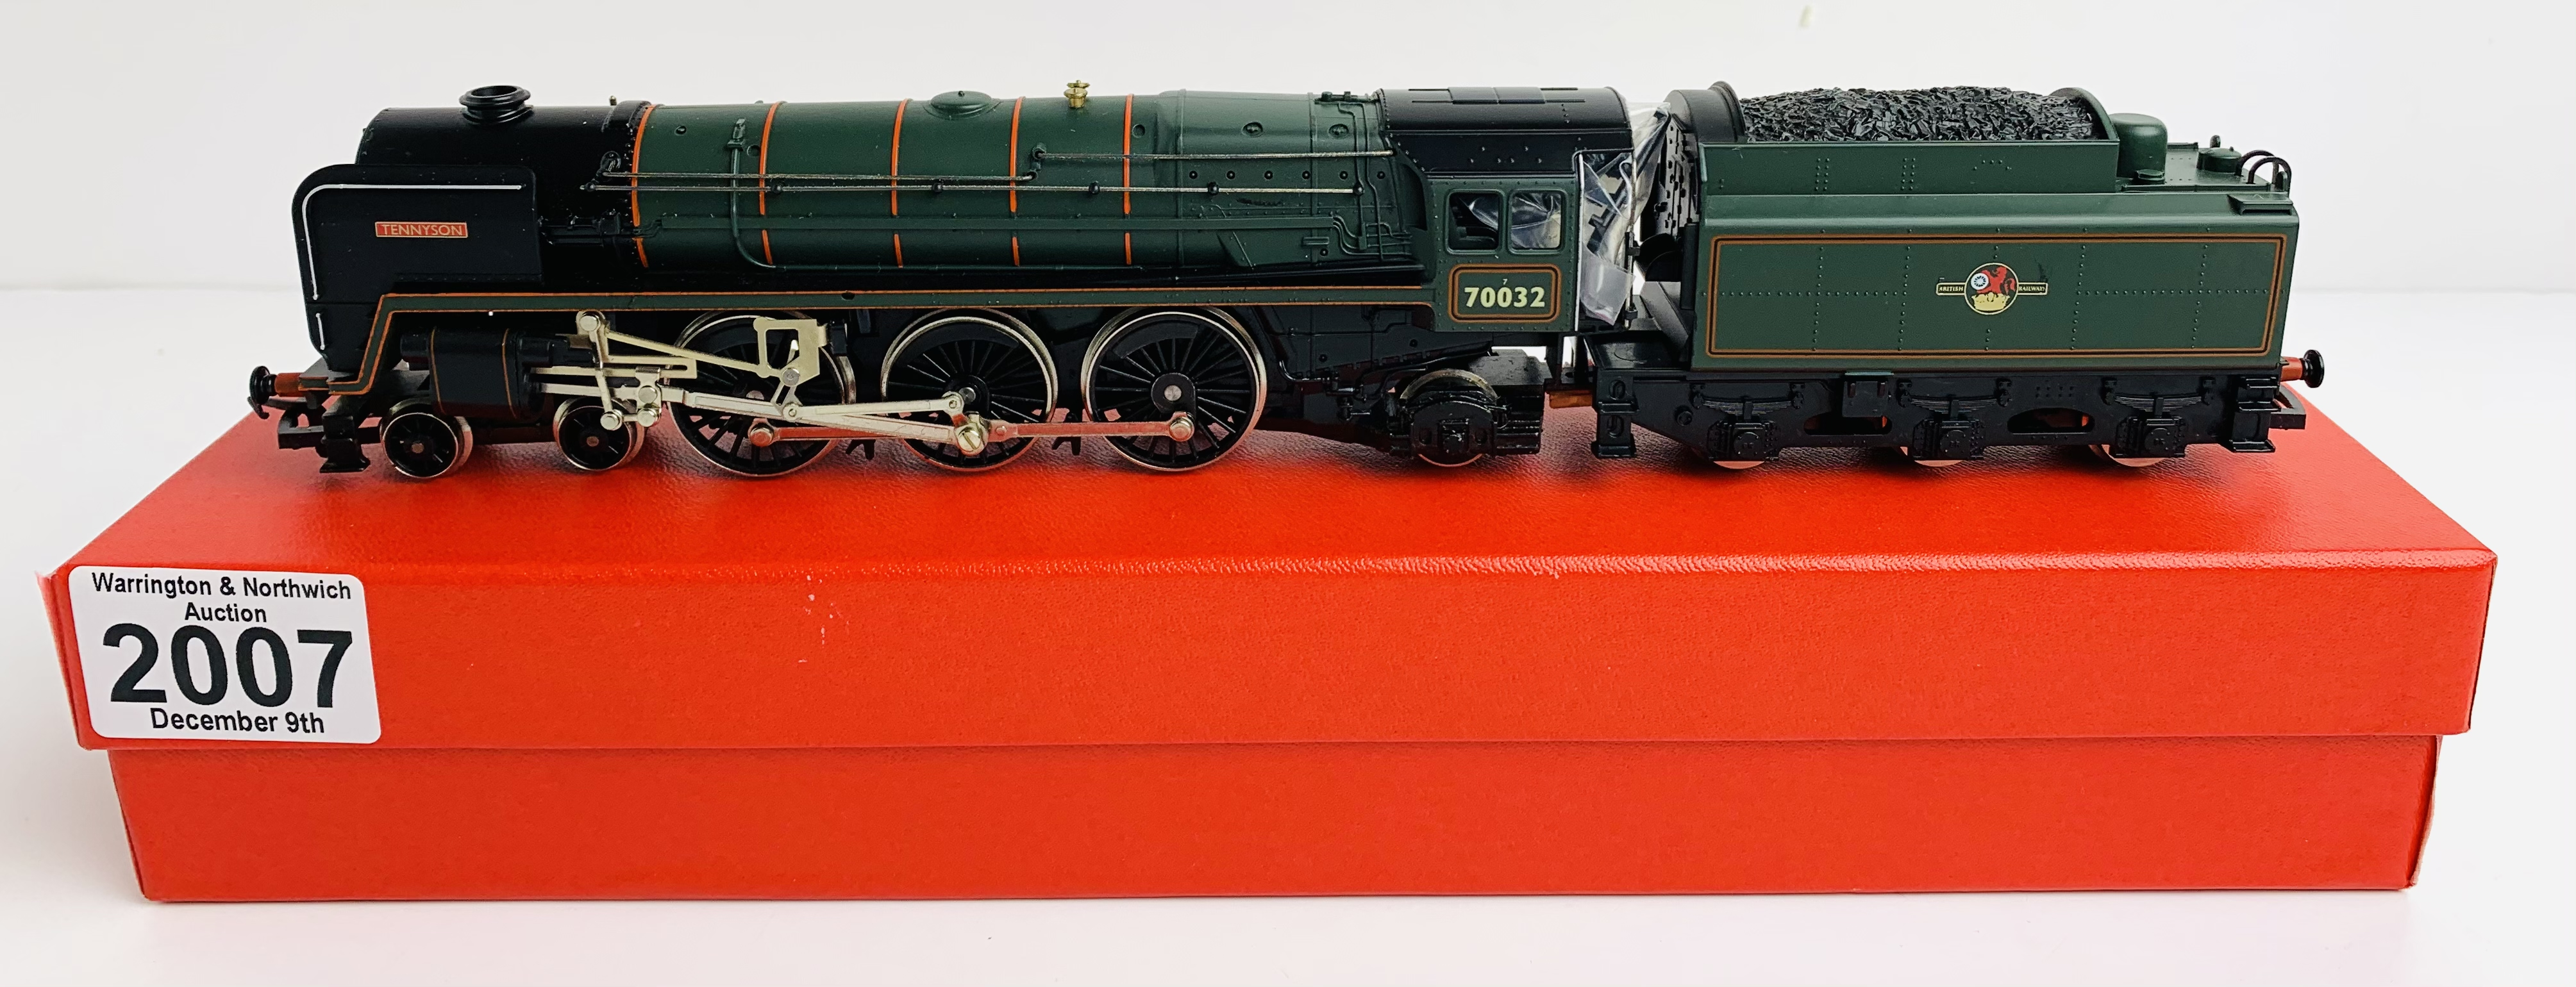 Hornby OO BR Green 'Tennyson' 70032 Loco - Supplied in Custom Leatherette Red Box - P&P Group 1 (£